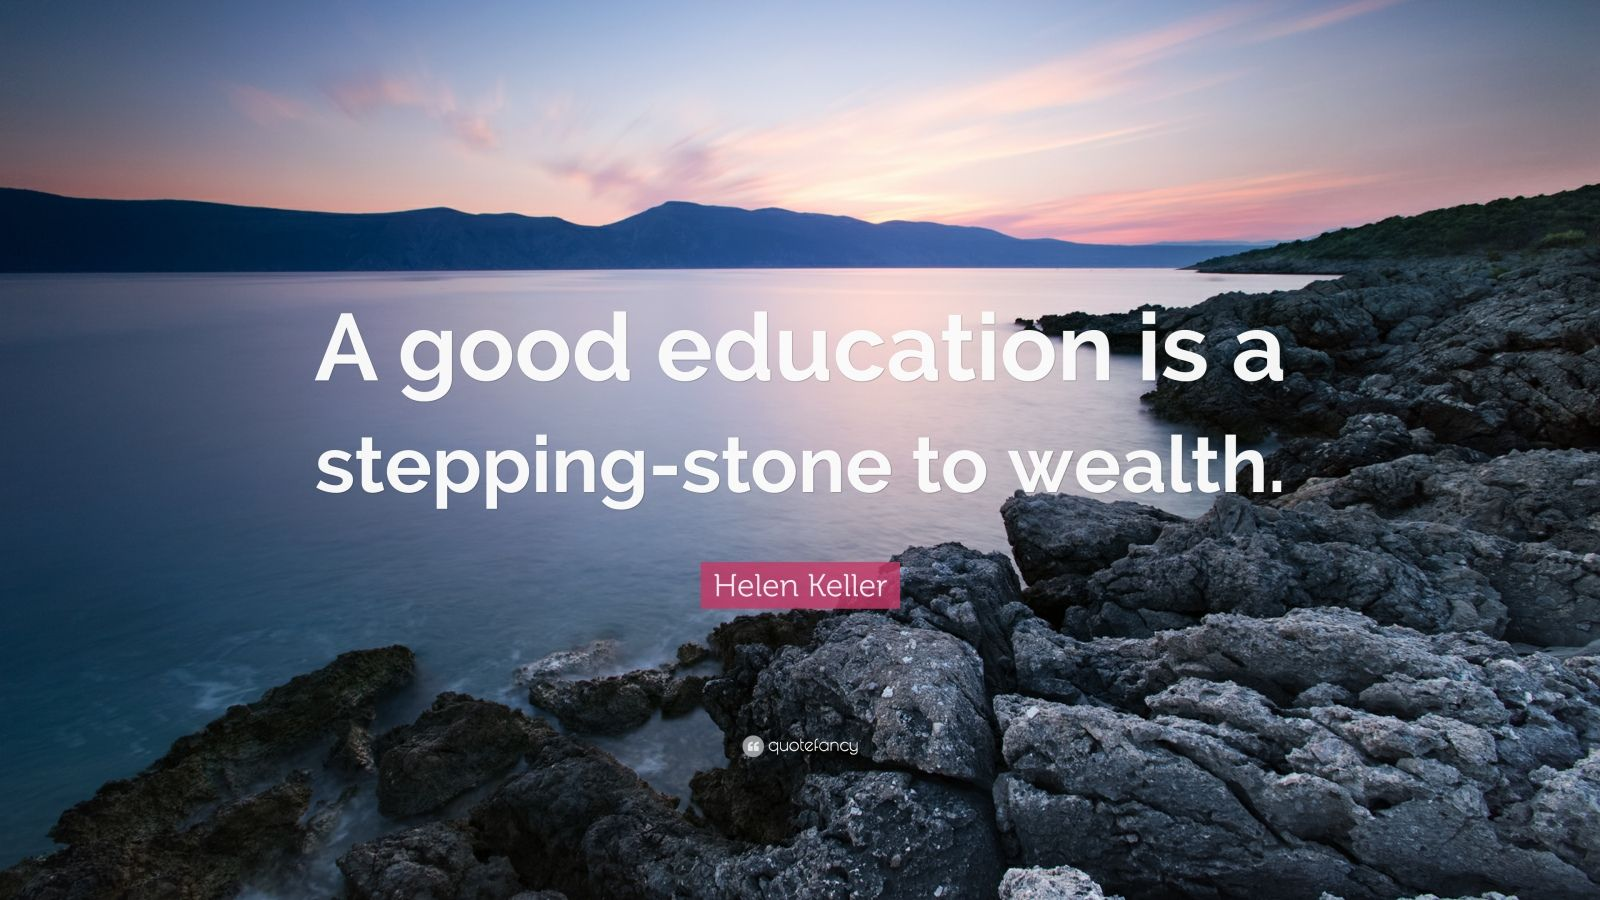 What are the dangers of viewing education as a stepping stone?